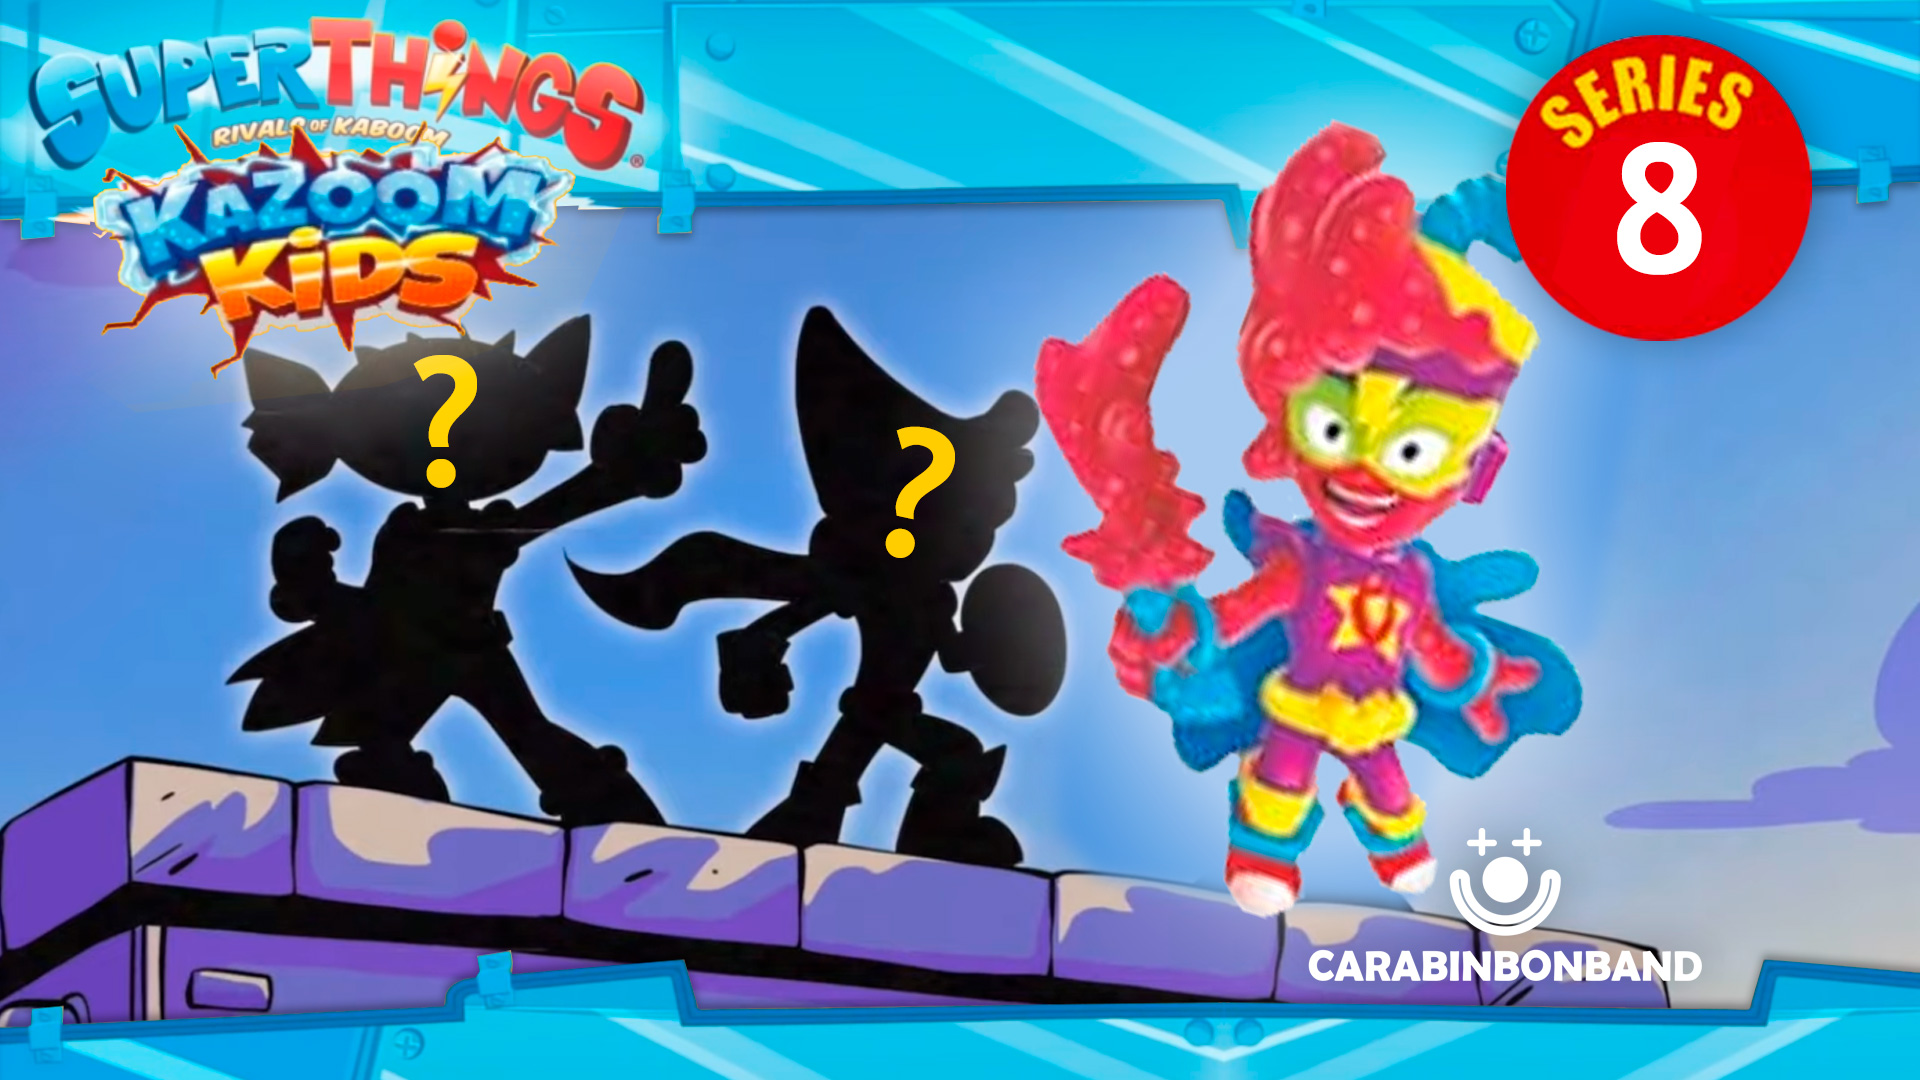 THIS IS THE NEW KAZOOM KIDS FROM SUPERHINGS SERIES 8